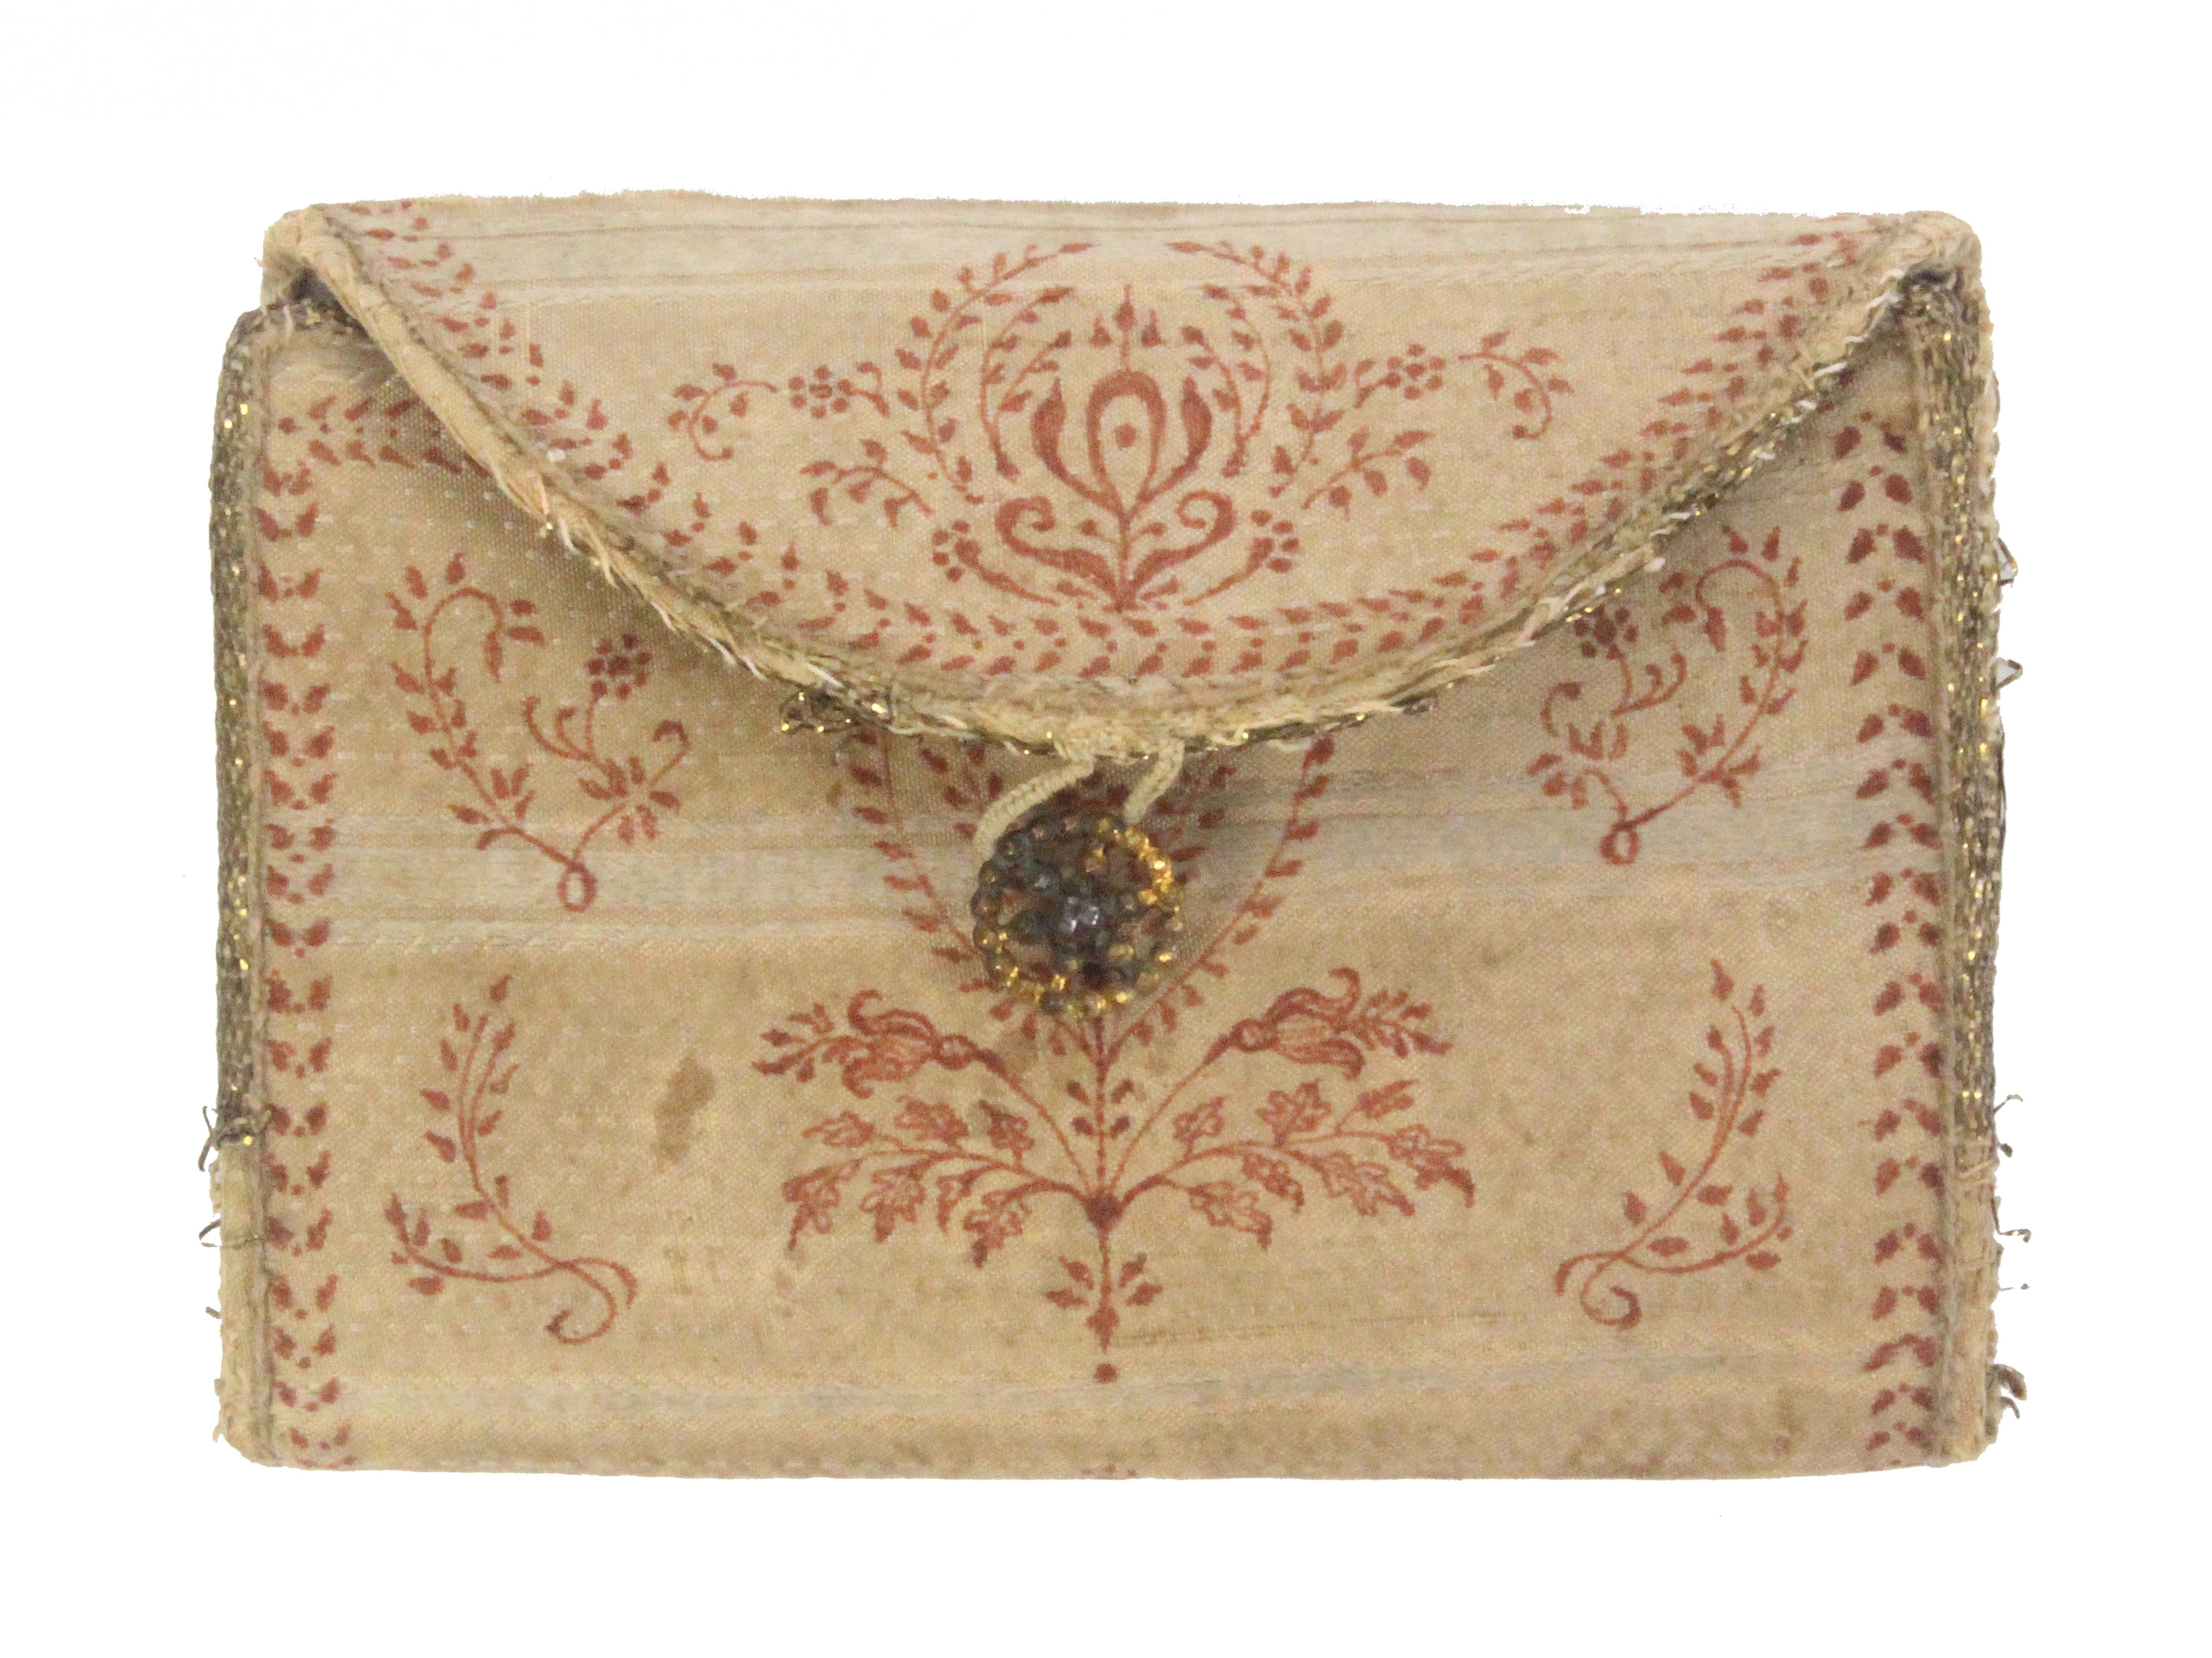 An 18th Century ivory silk sewing wallet, with anthemion and floral printed or painted decoration, - Image 2 of 3